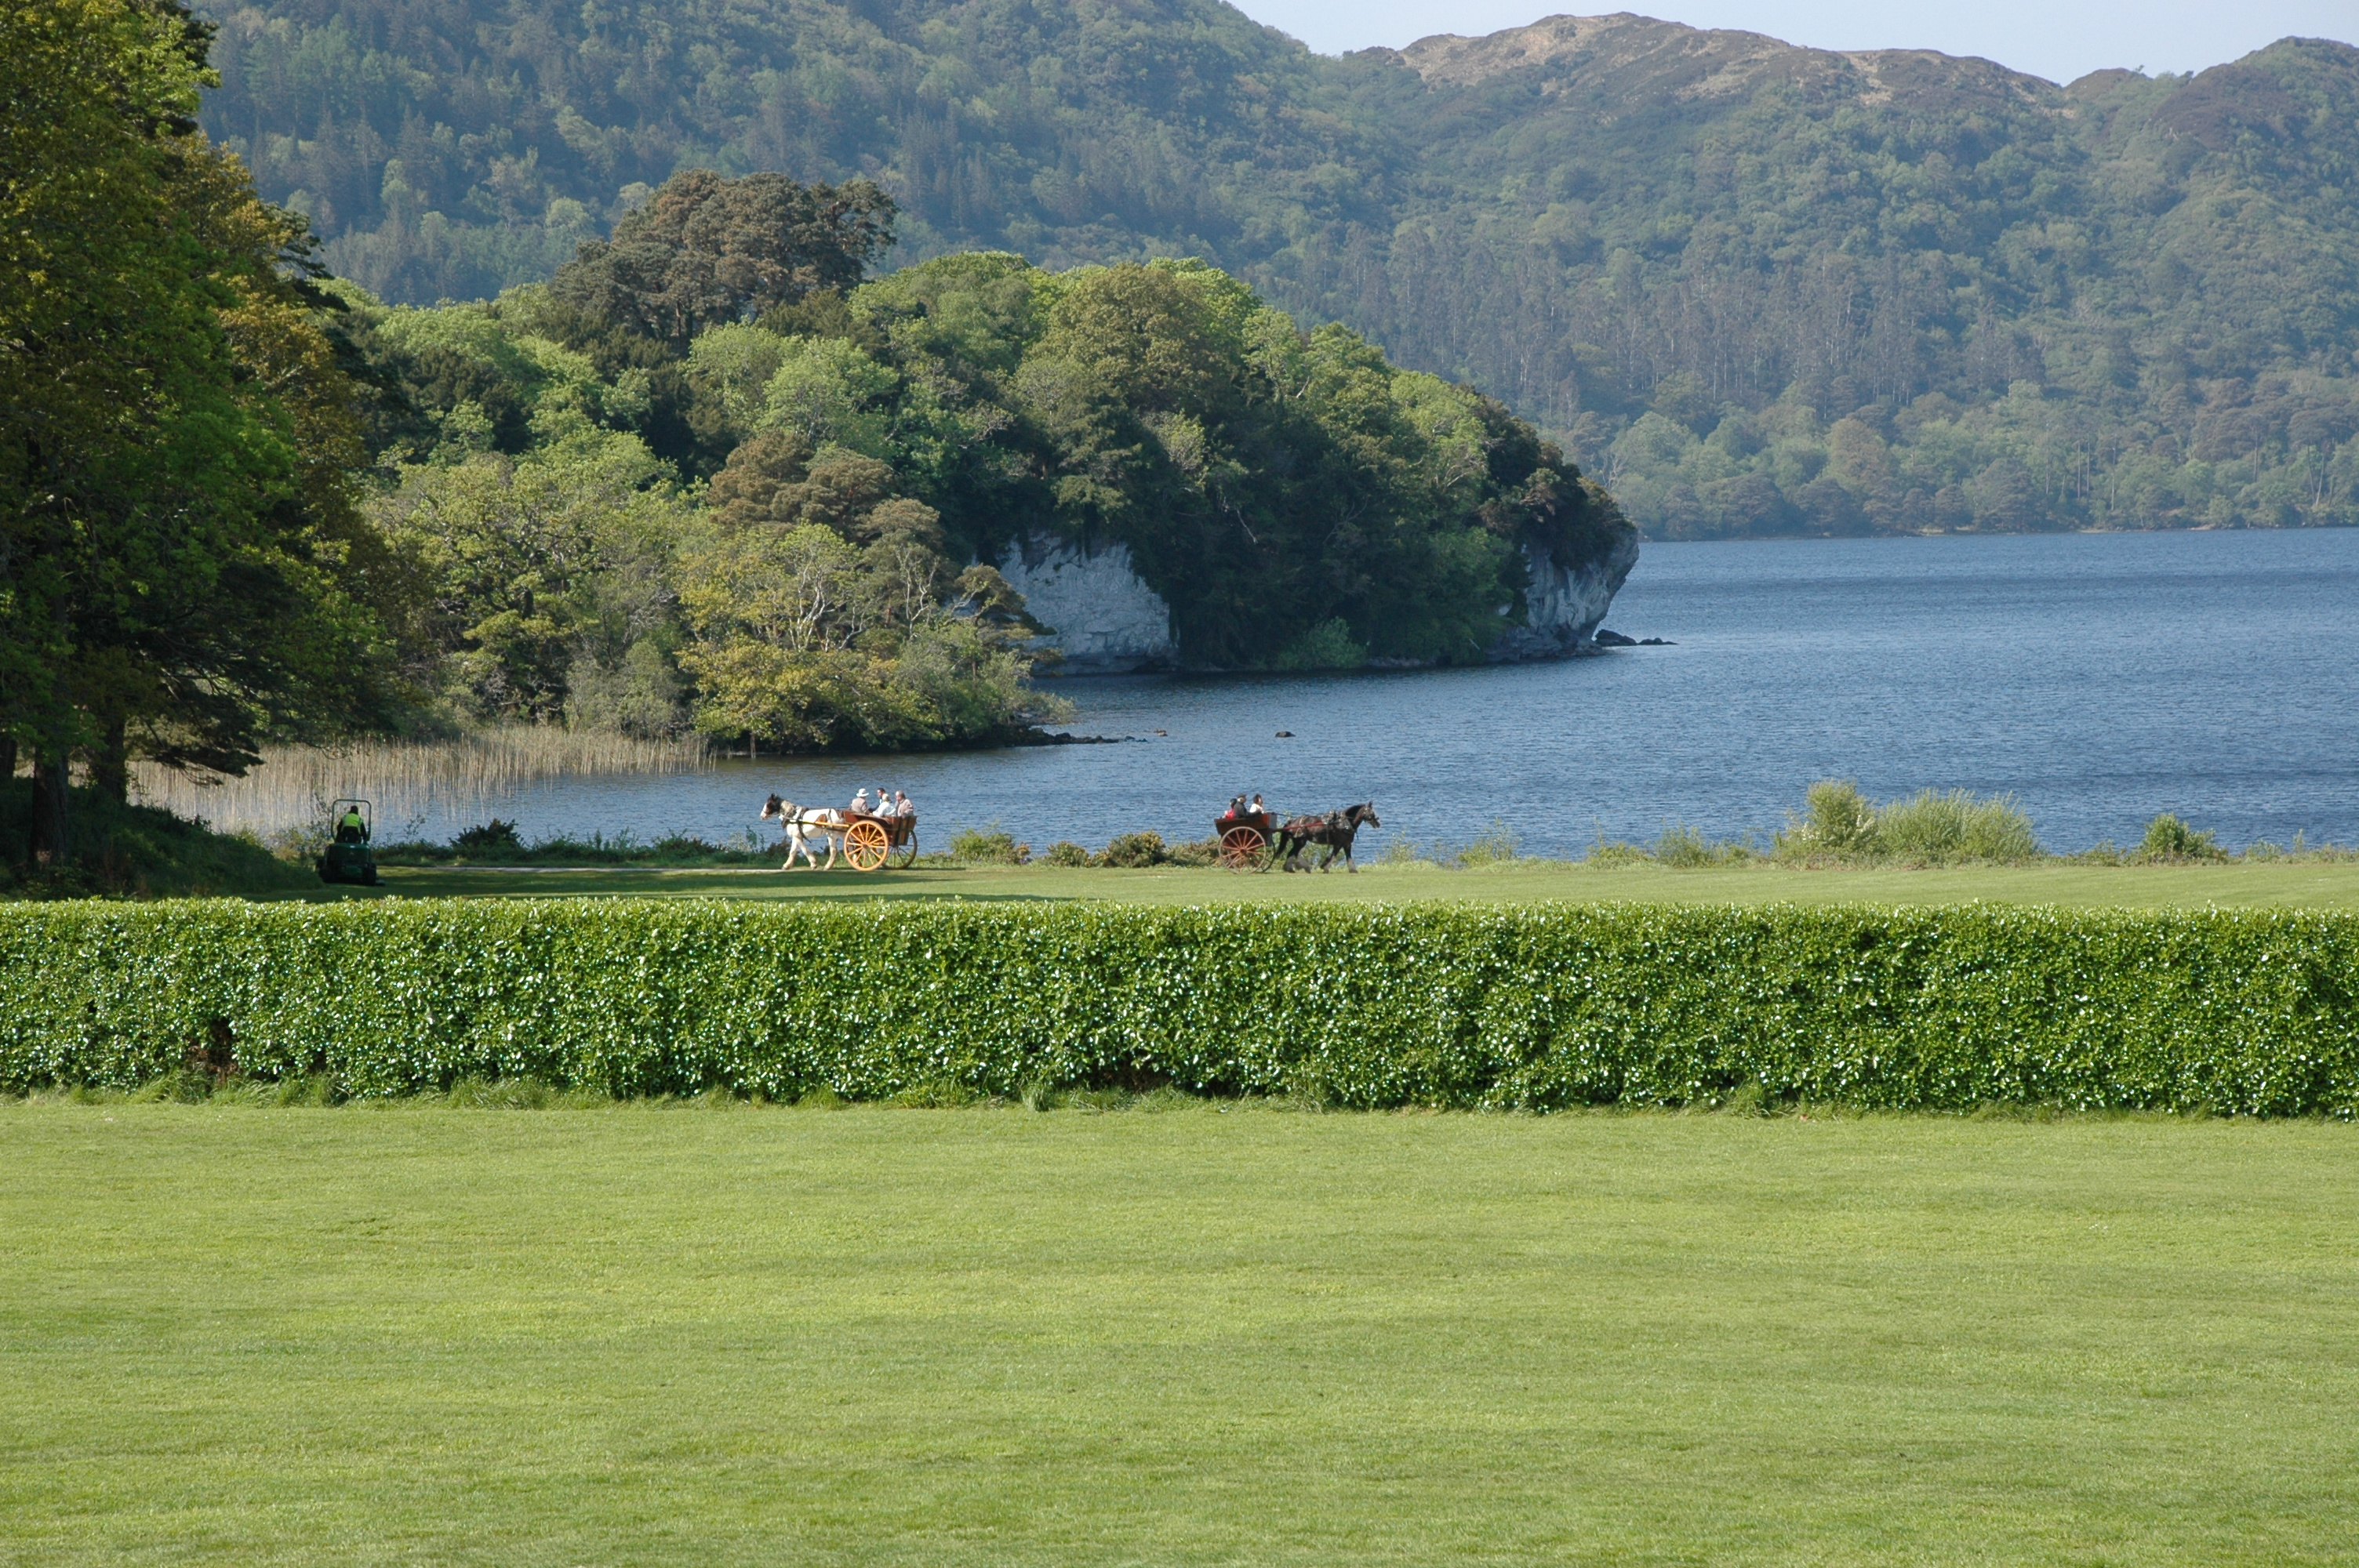 HEAVY TRAFFIC BY MUCKROSS BAY (J O'GRADY)